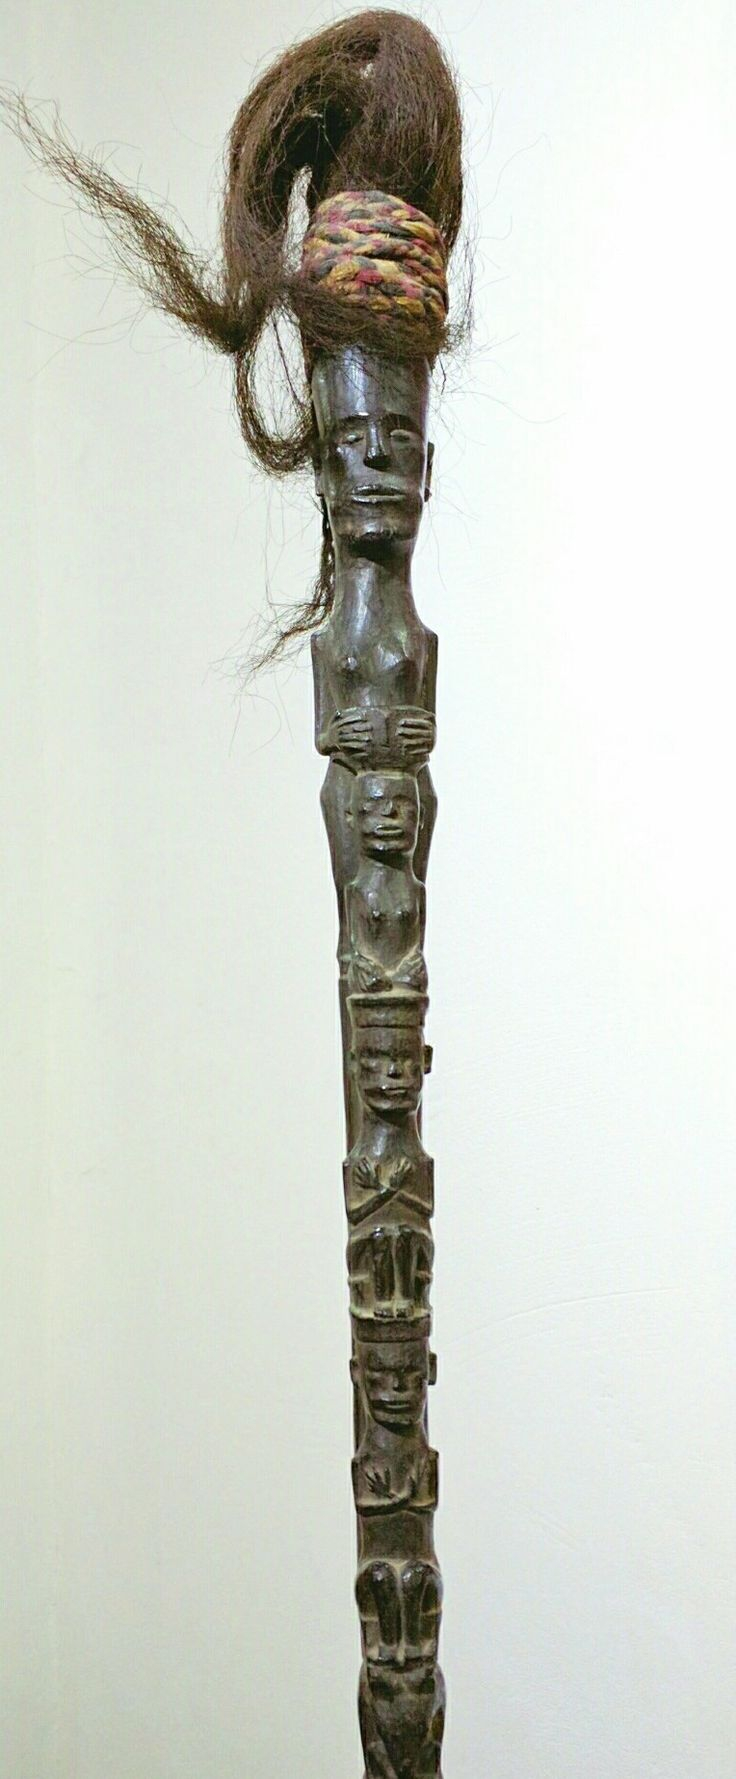 Shaman staff from the Batak people of North Sumatra, Indonesia. Tunggal Panaluan #batak #indonesianart www.kulukgallery.com